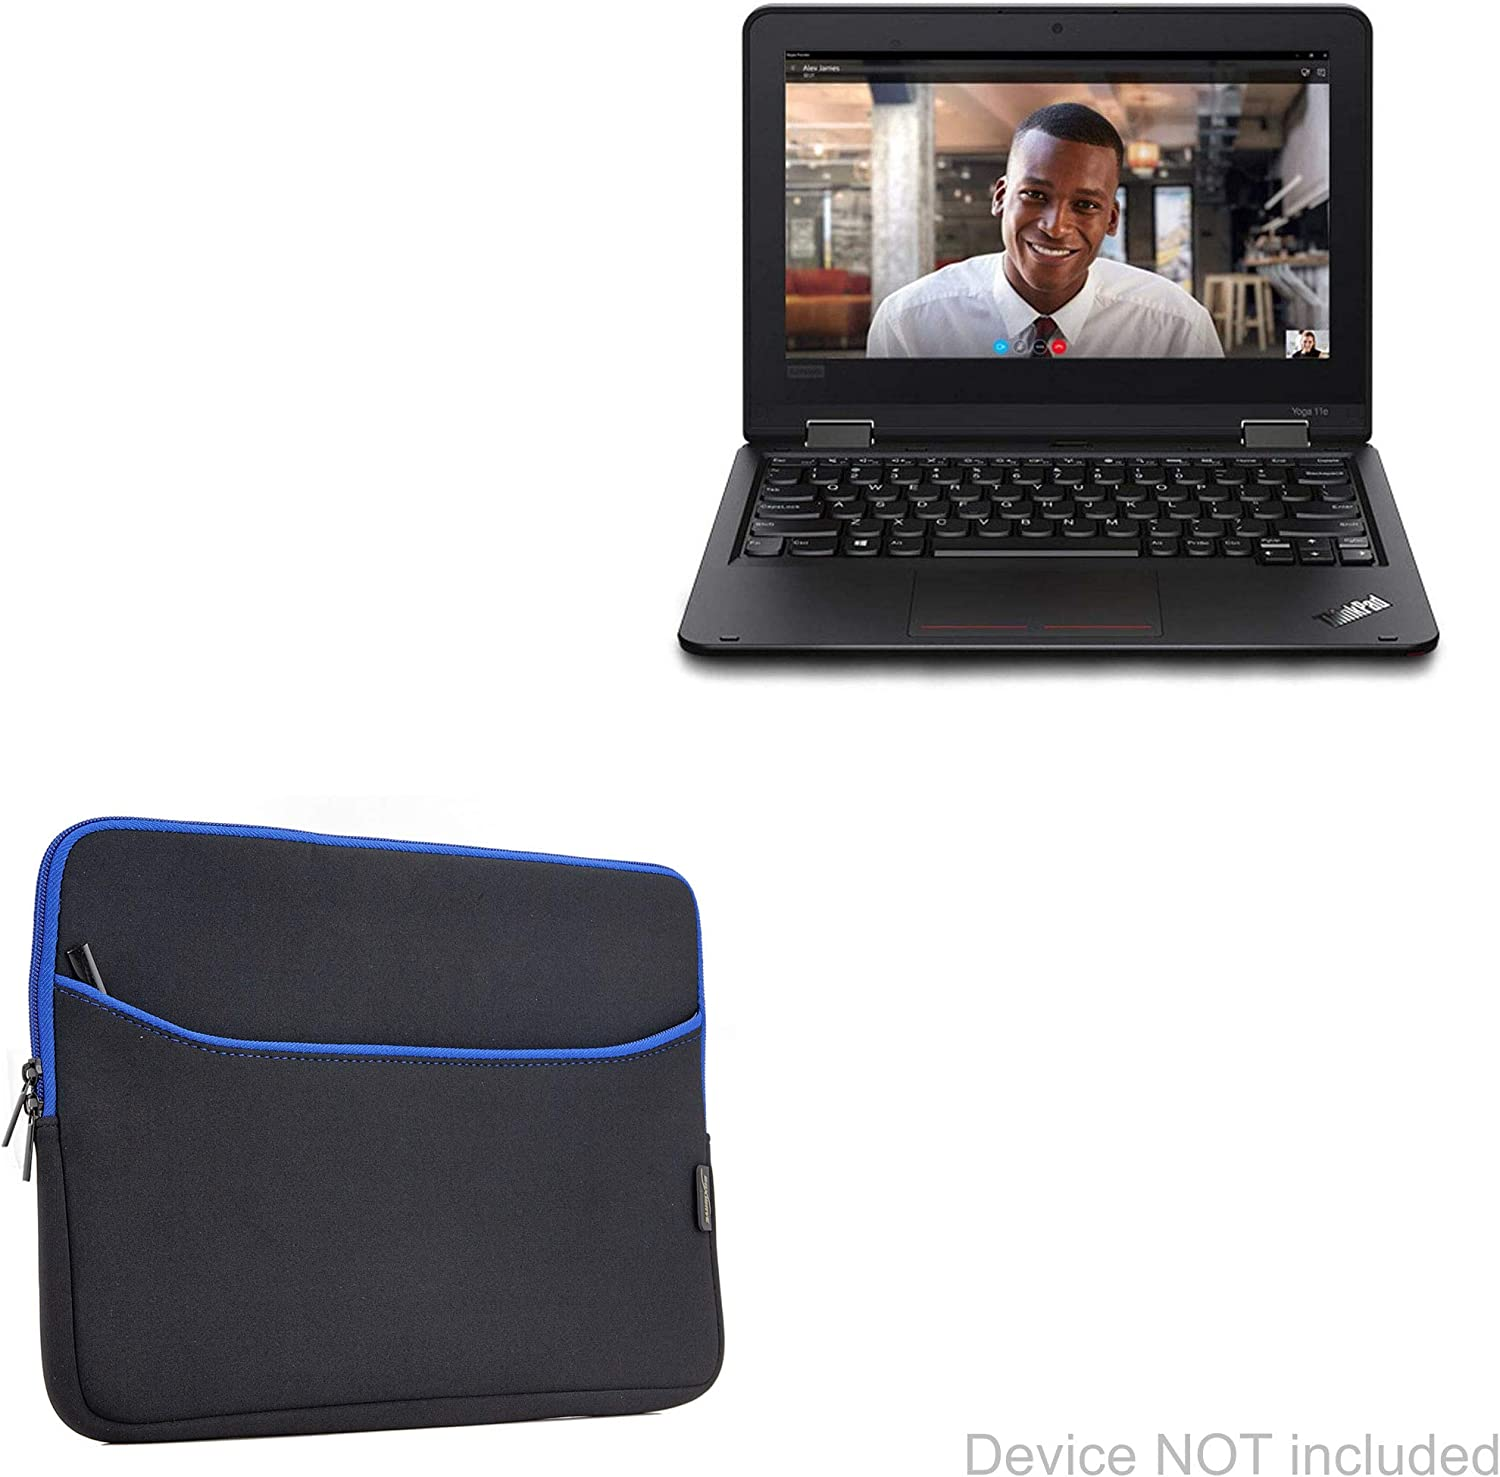 Lenovo ThinkPad Yoga 11e (5th Gen) (11.6 in) Case, BoxWave [SoftSuit with Pocket] Soft Pouch Cover w/Sleeve for Lenovo ThinkPad Yoga 11e (5th Gen) (11.6 in) - Jet Black with Blue Trim